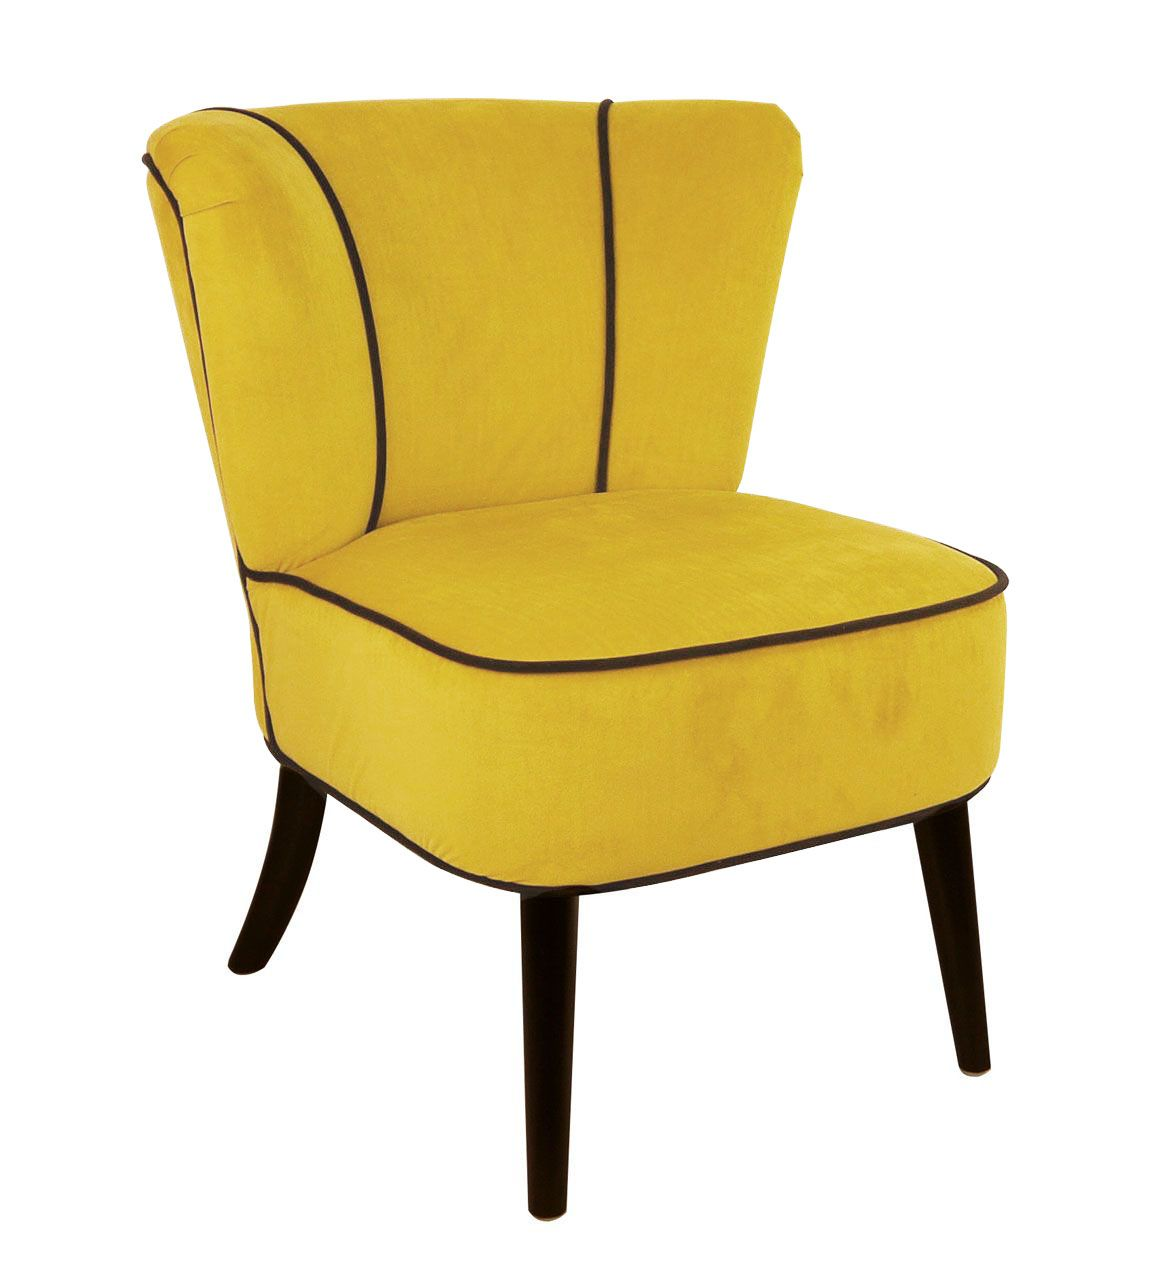 fauteuil crapaud jaune aspect velours so skin. Black Bedroom Furniture Sets. Home Design Ideas